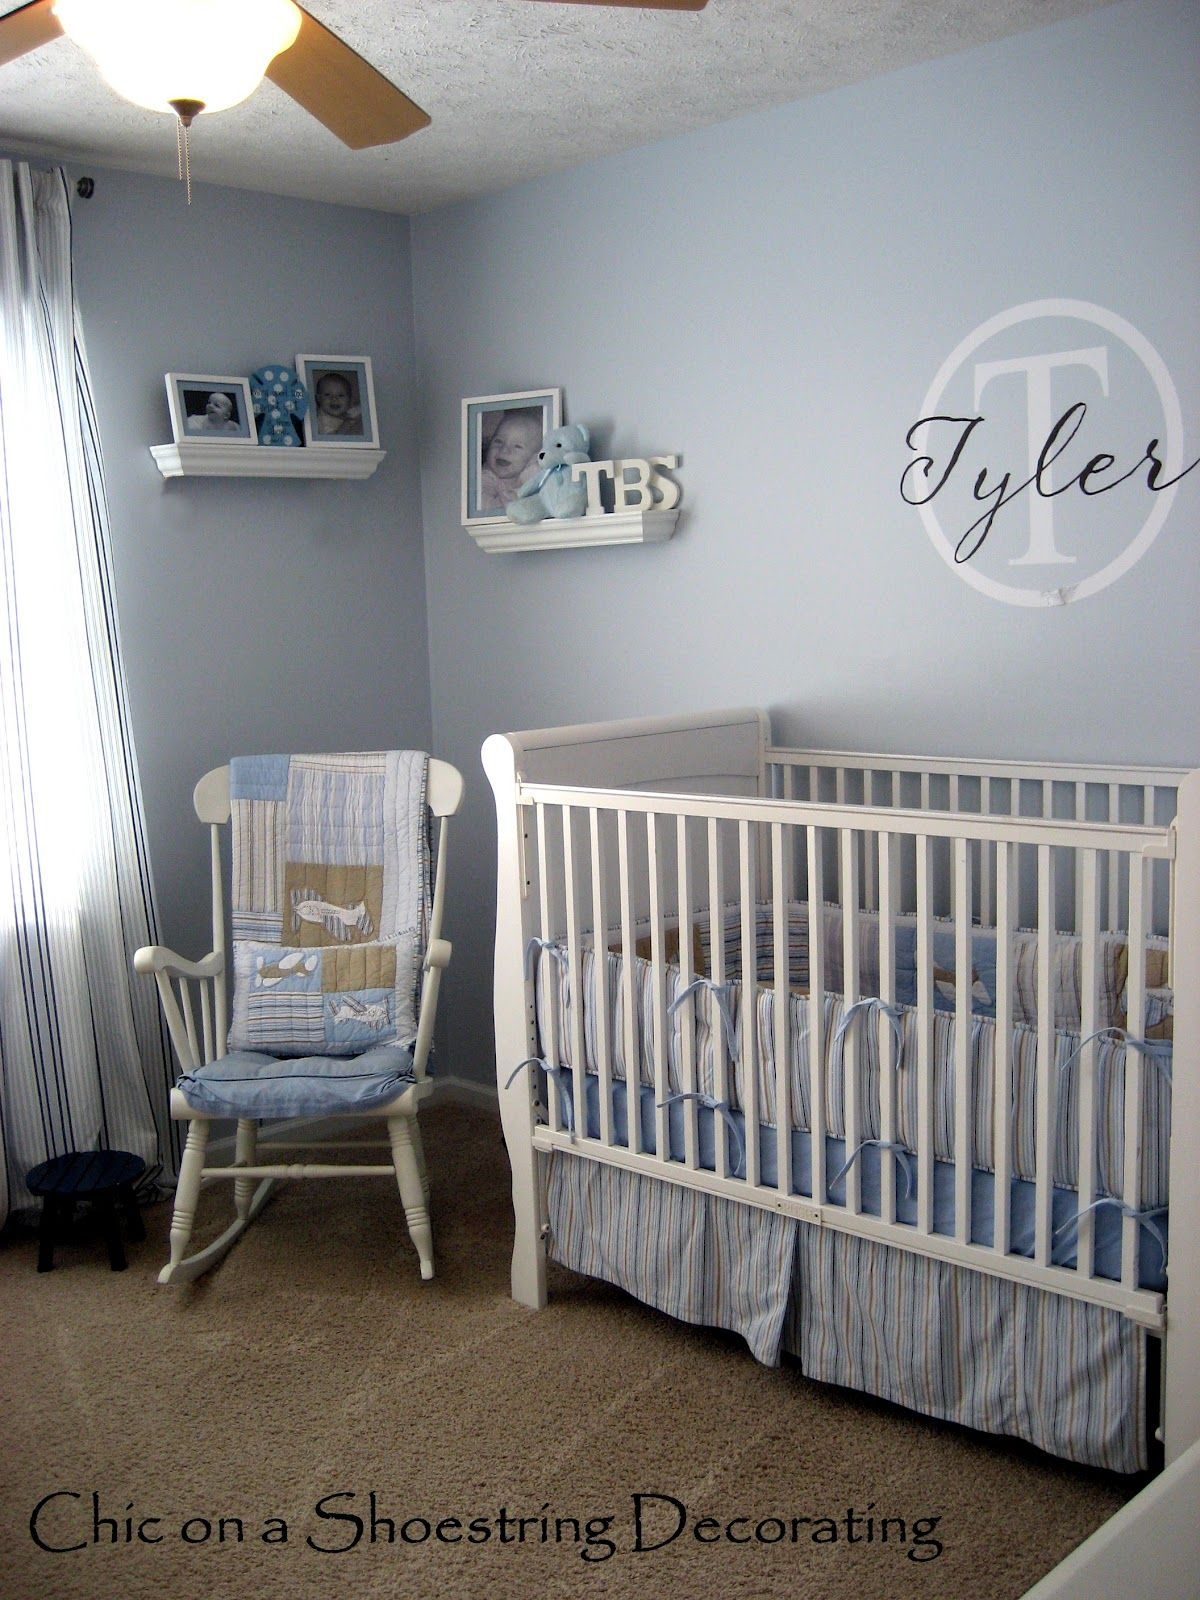 Chic On A Shoestring Decorating My Boy S Nursery Tour Baby Room Set Bedroom Decor On A Budget Bedroom Decor